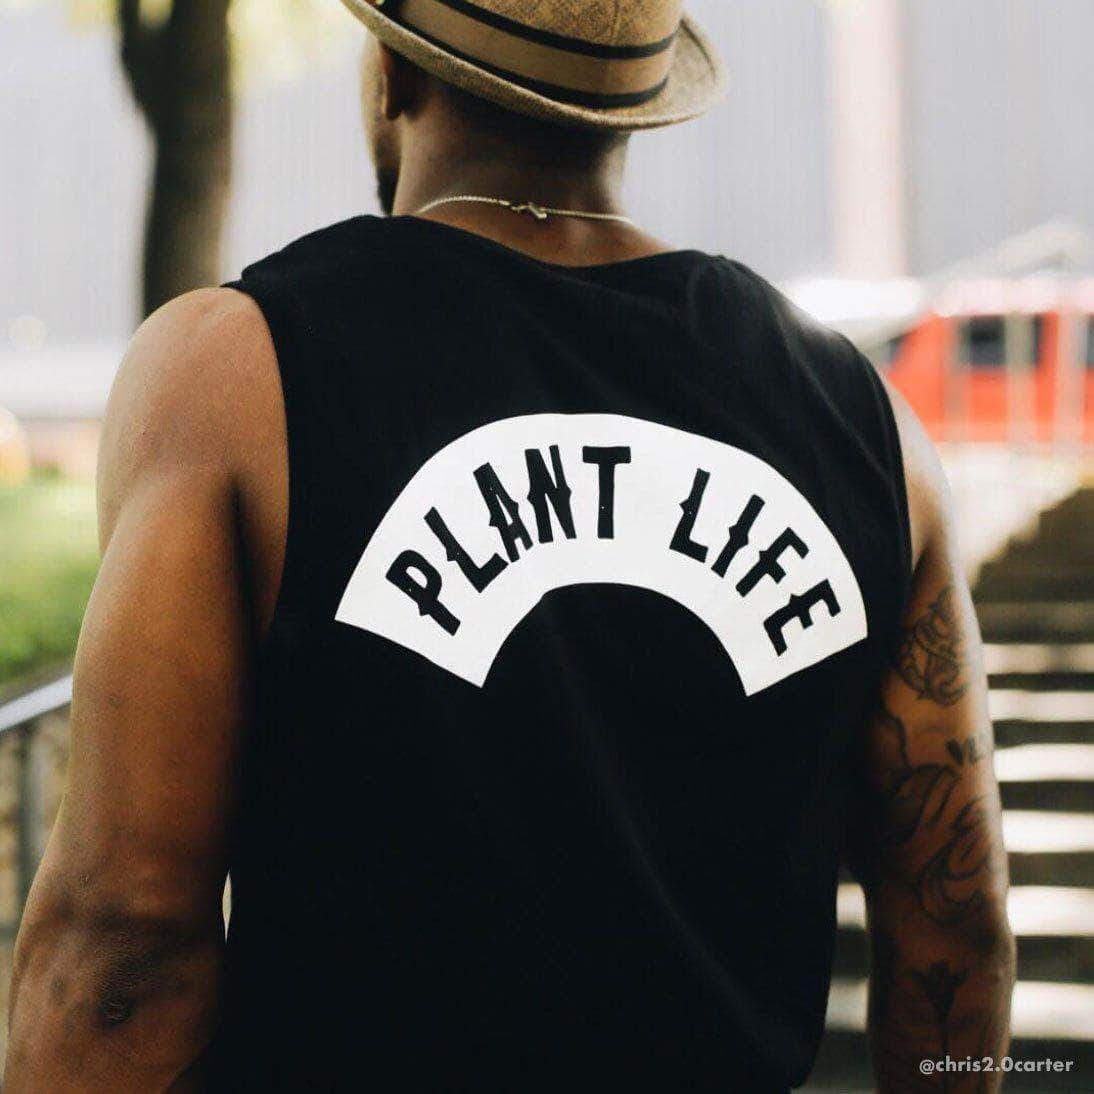 PLANT FACED CLOTHING: Tanks - Plant Life Classic - Black - Unisex Muscle Tee, Vegan Clothing